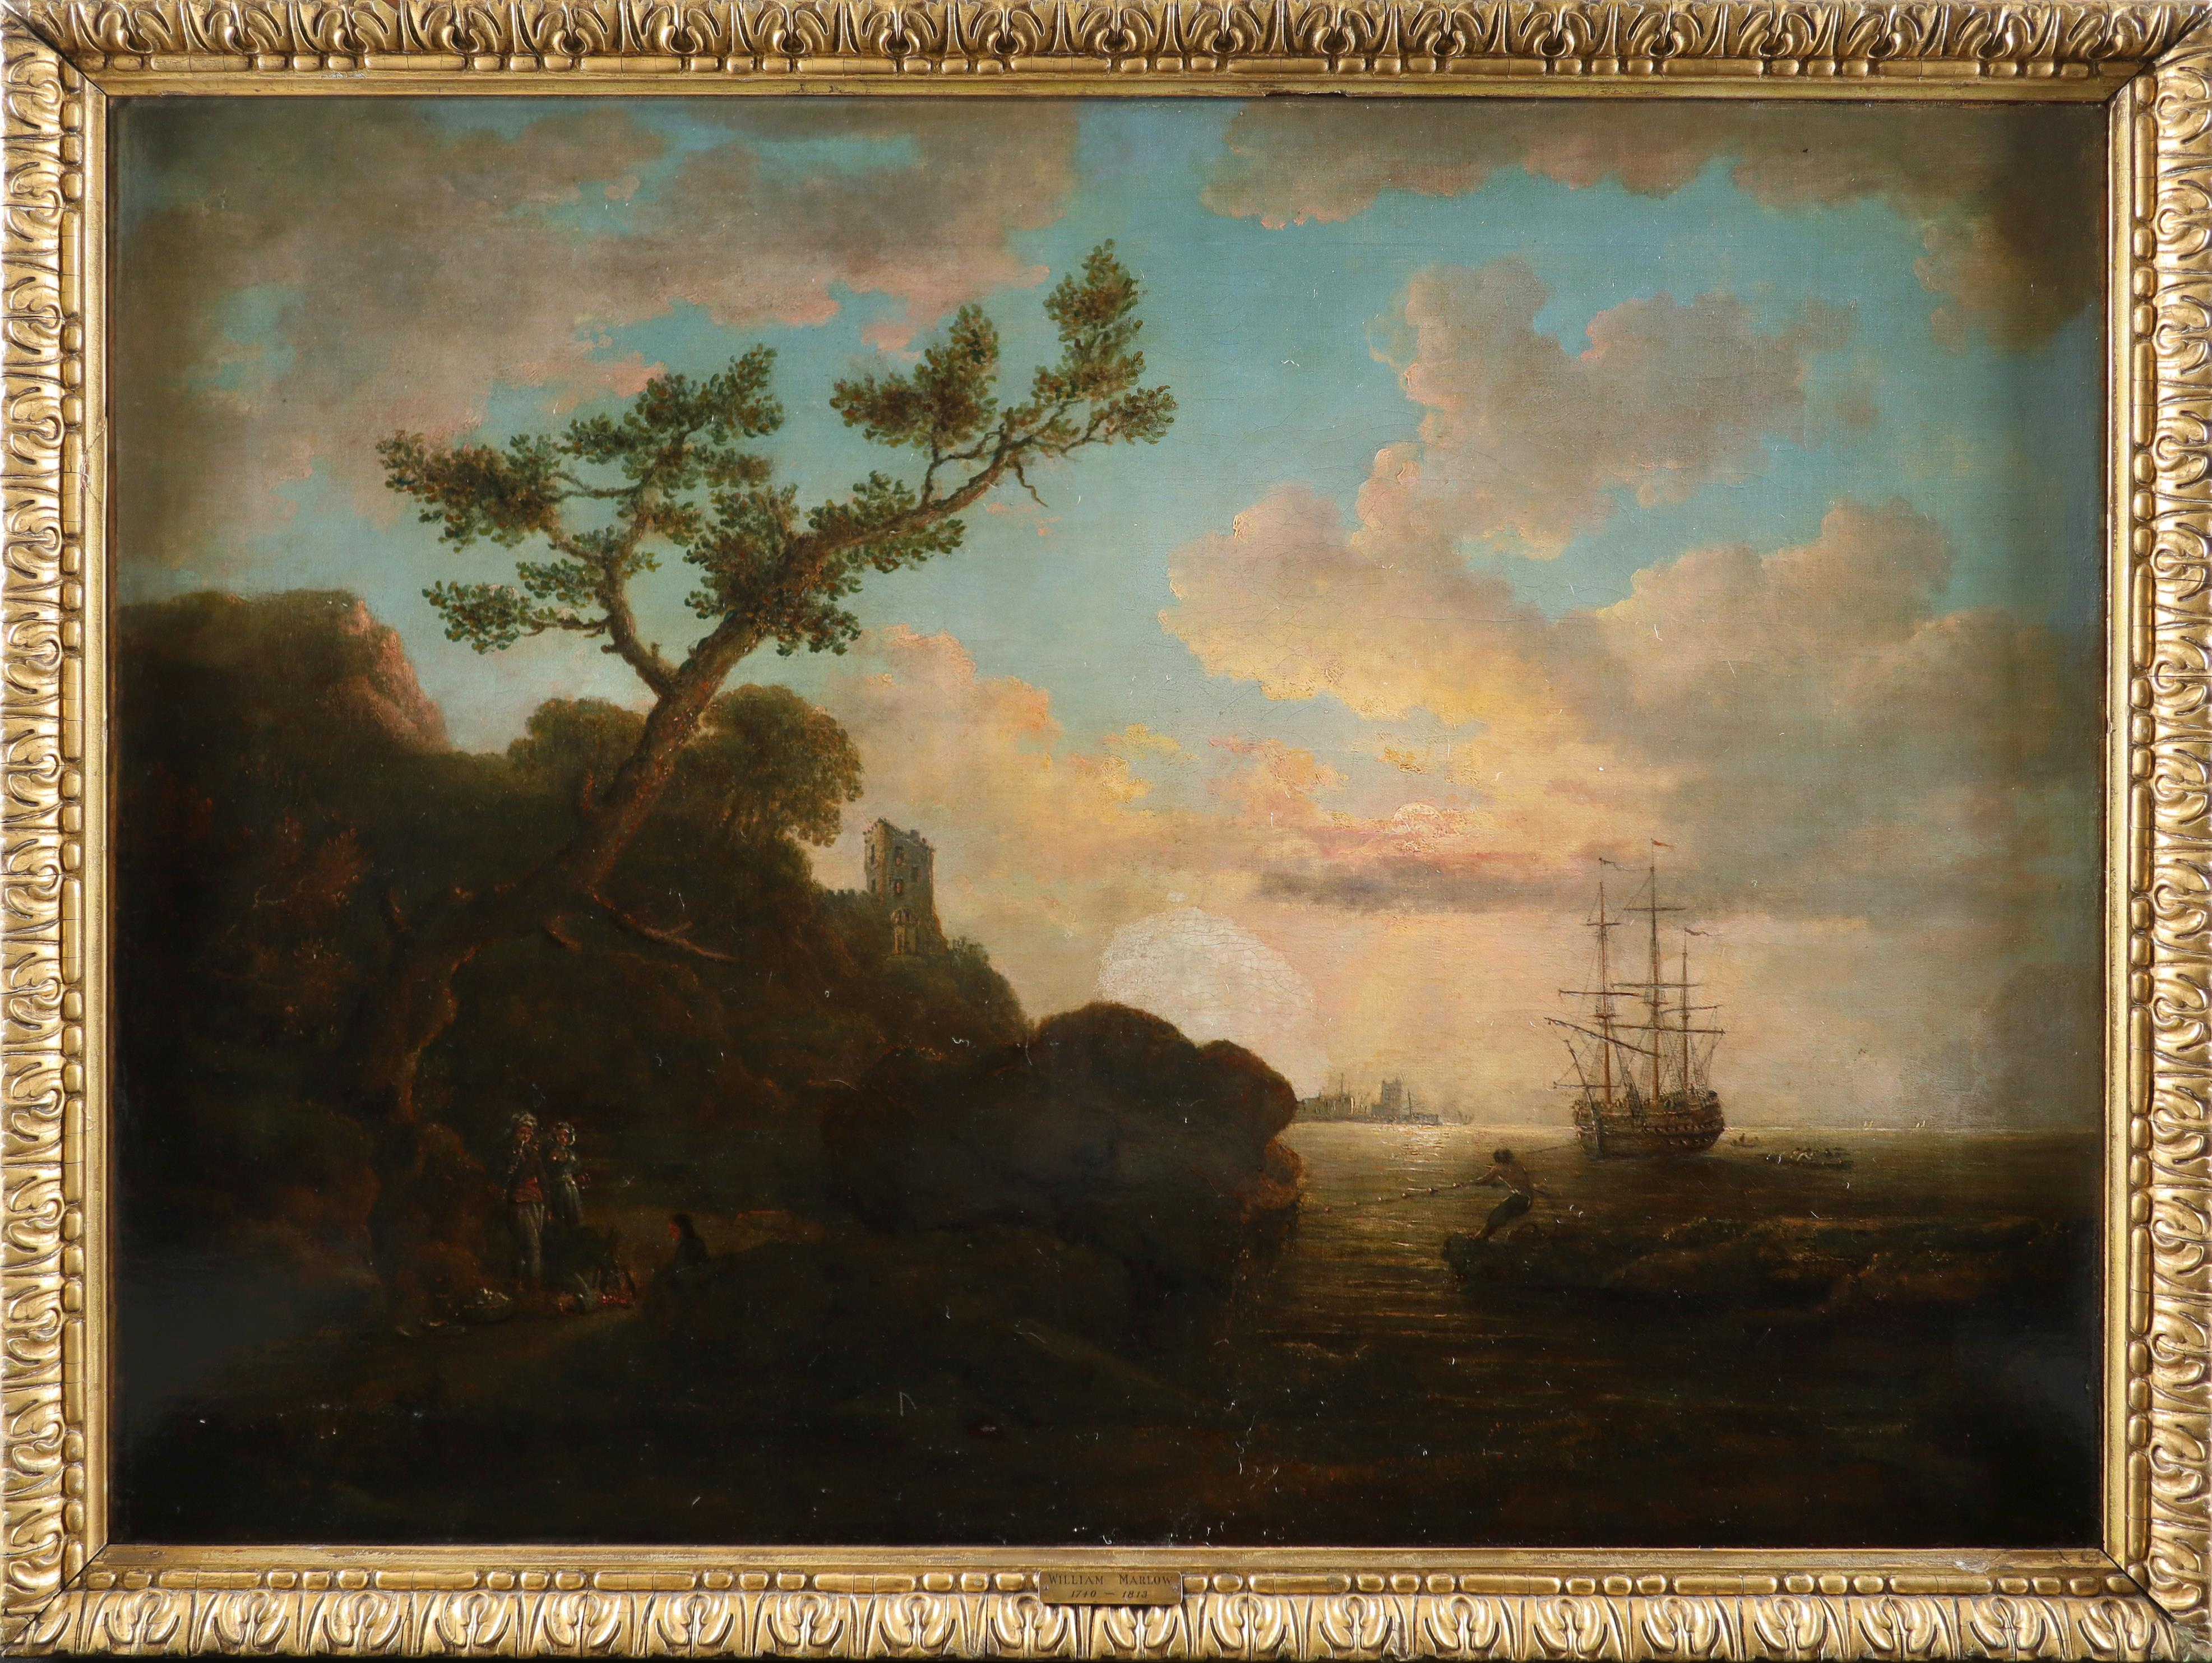 English School 18th Century Coastal landscape with figures on the shore around a camp fire, shipping - Image 2 of 3